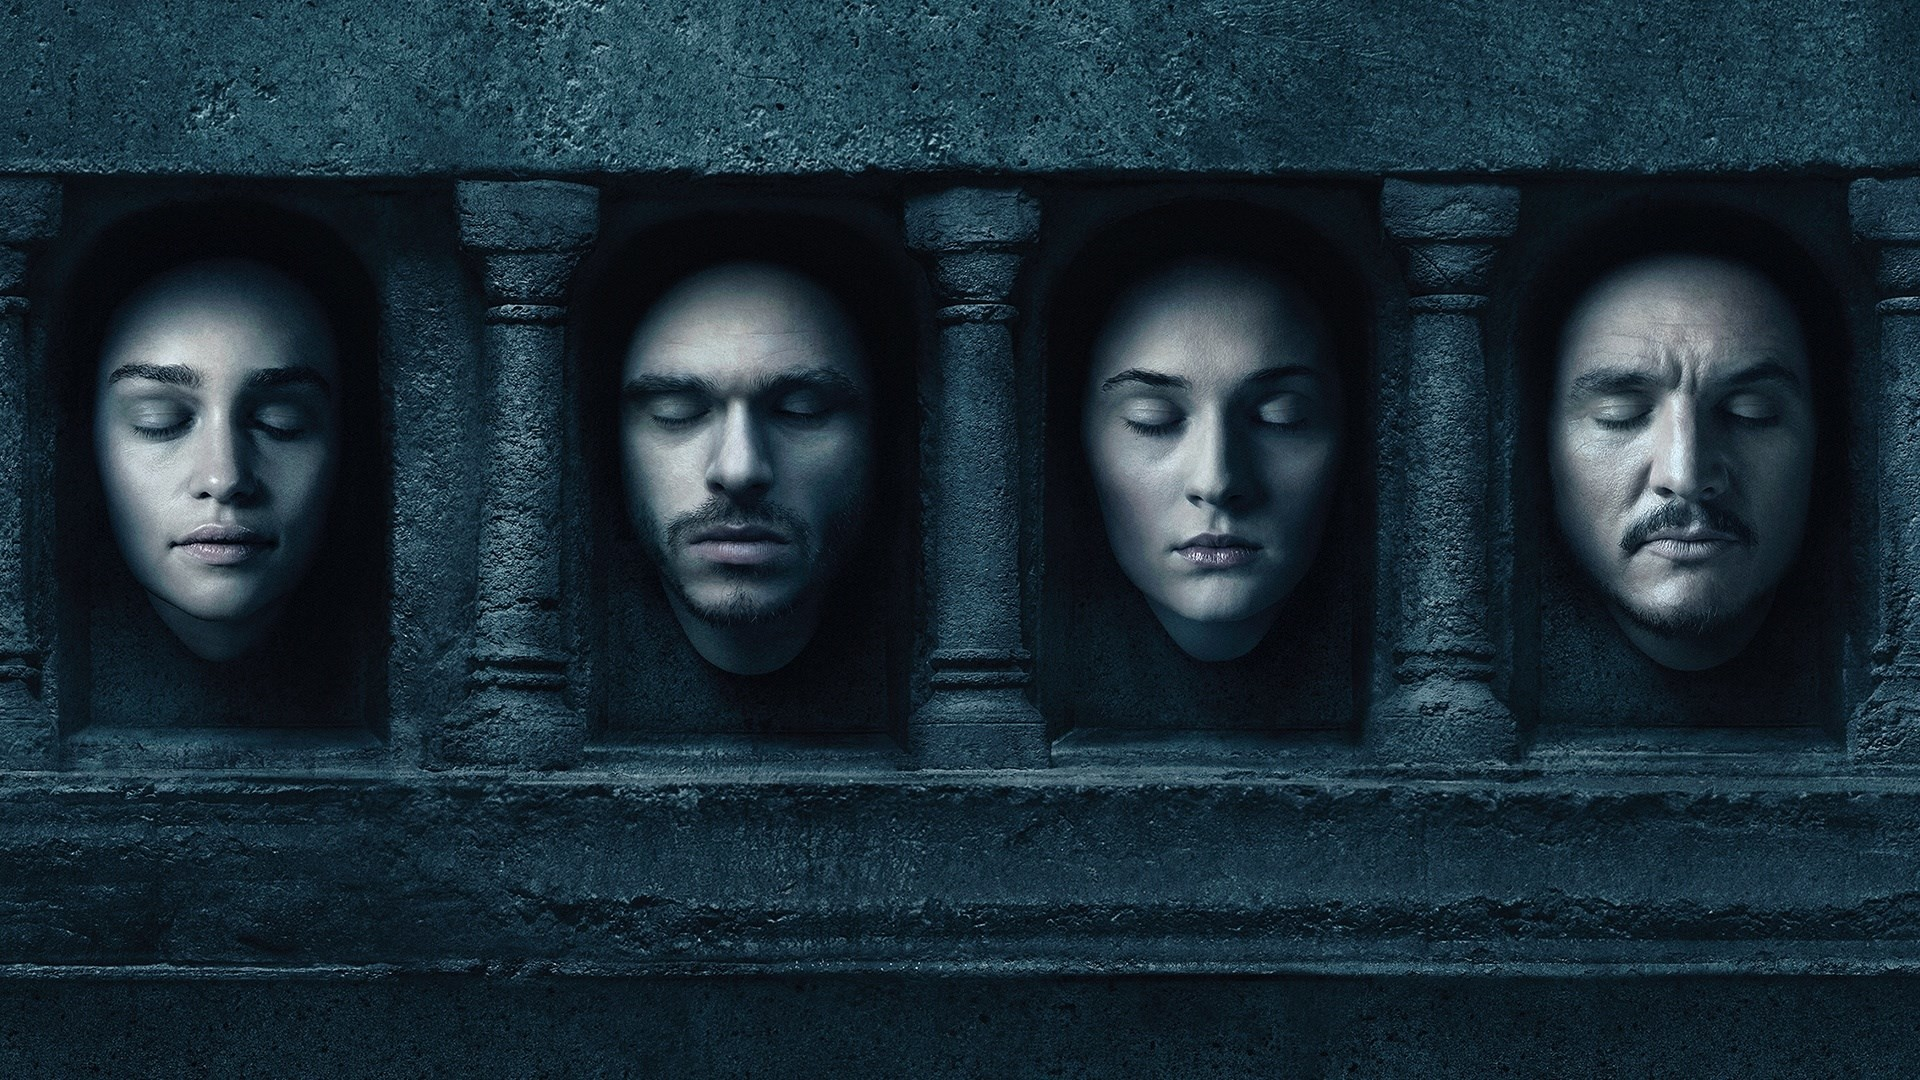 game of thrones wallpaper pack 1080p hd (Corwin Holiday 1920×1080)